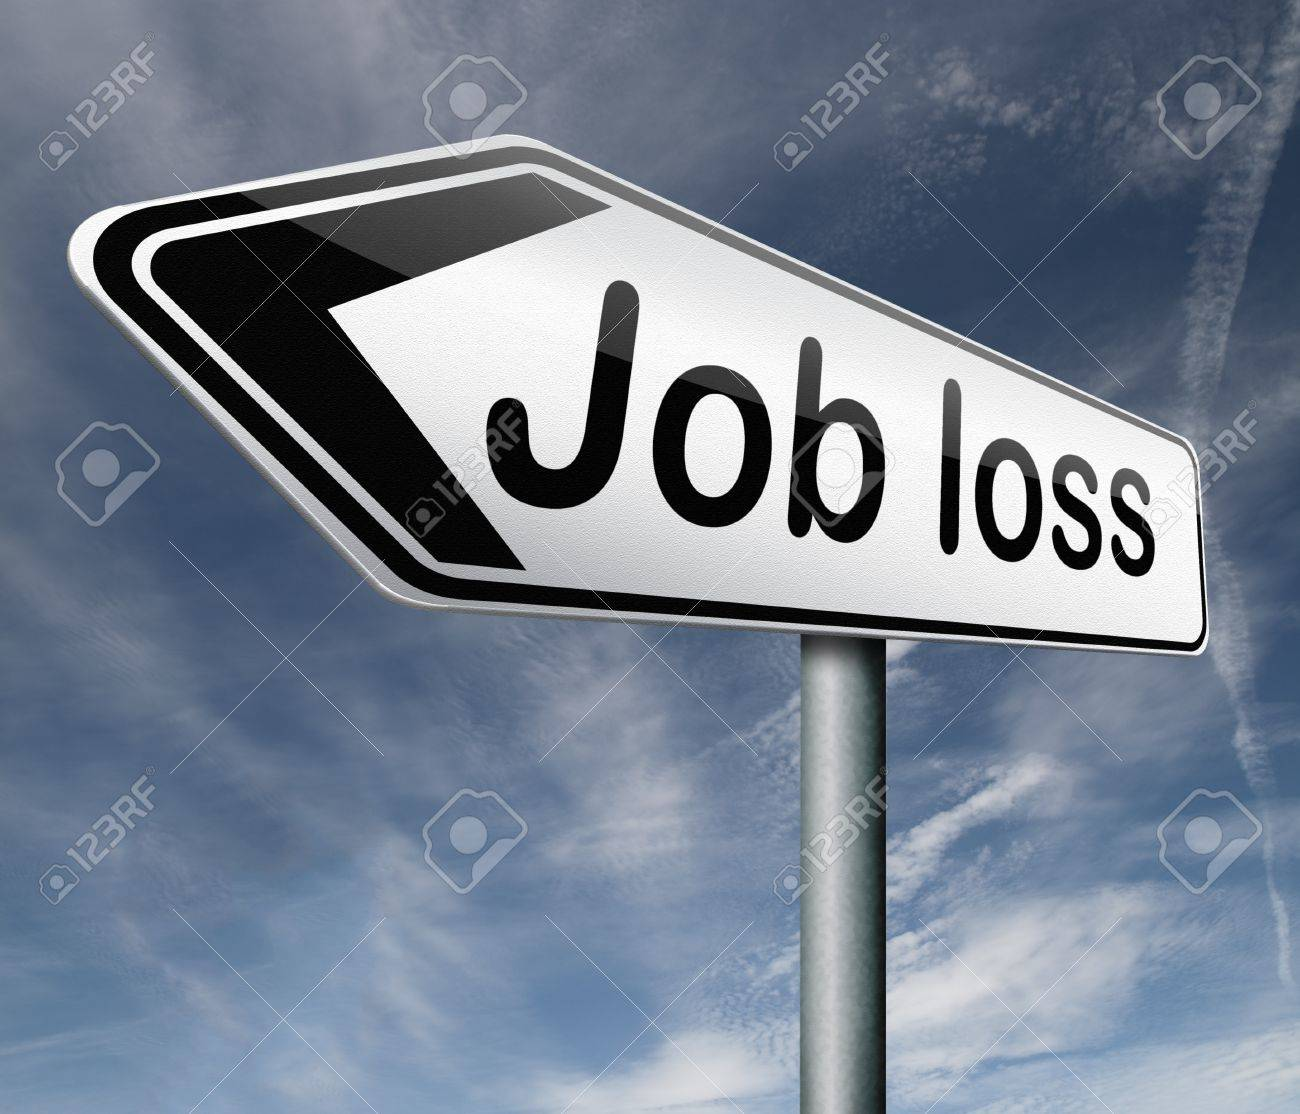 job loss getting fired loose your you re fired loss work jobless stock photo job loss getting fired loose your you re fired loss work jobless